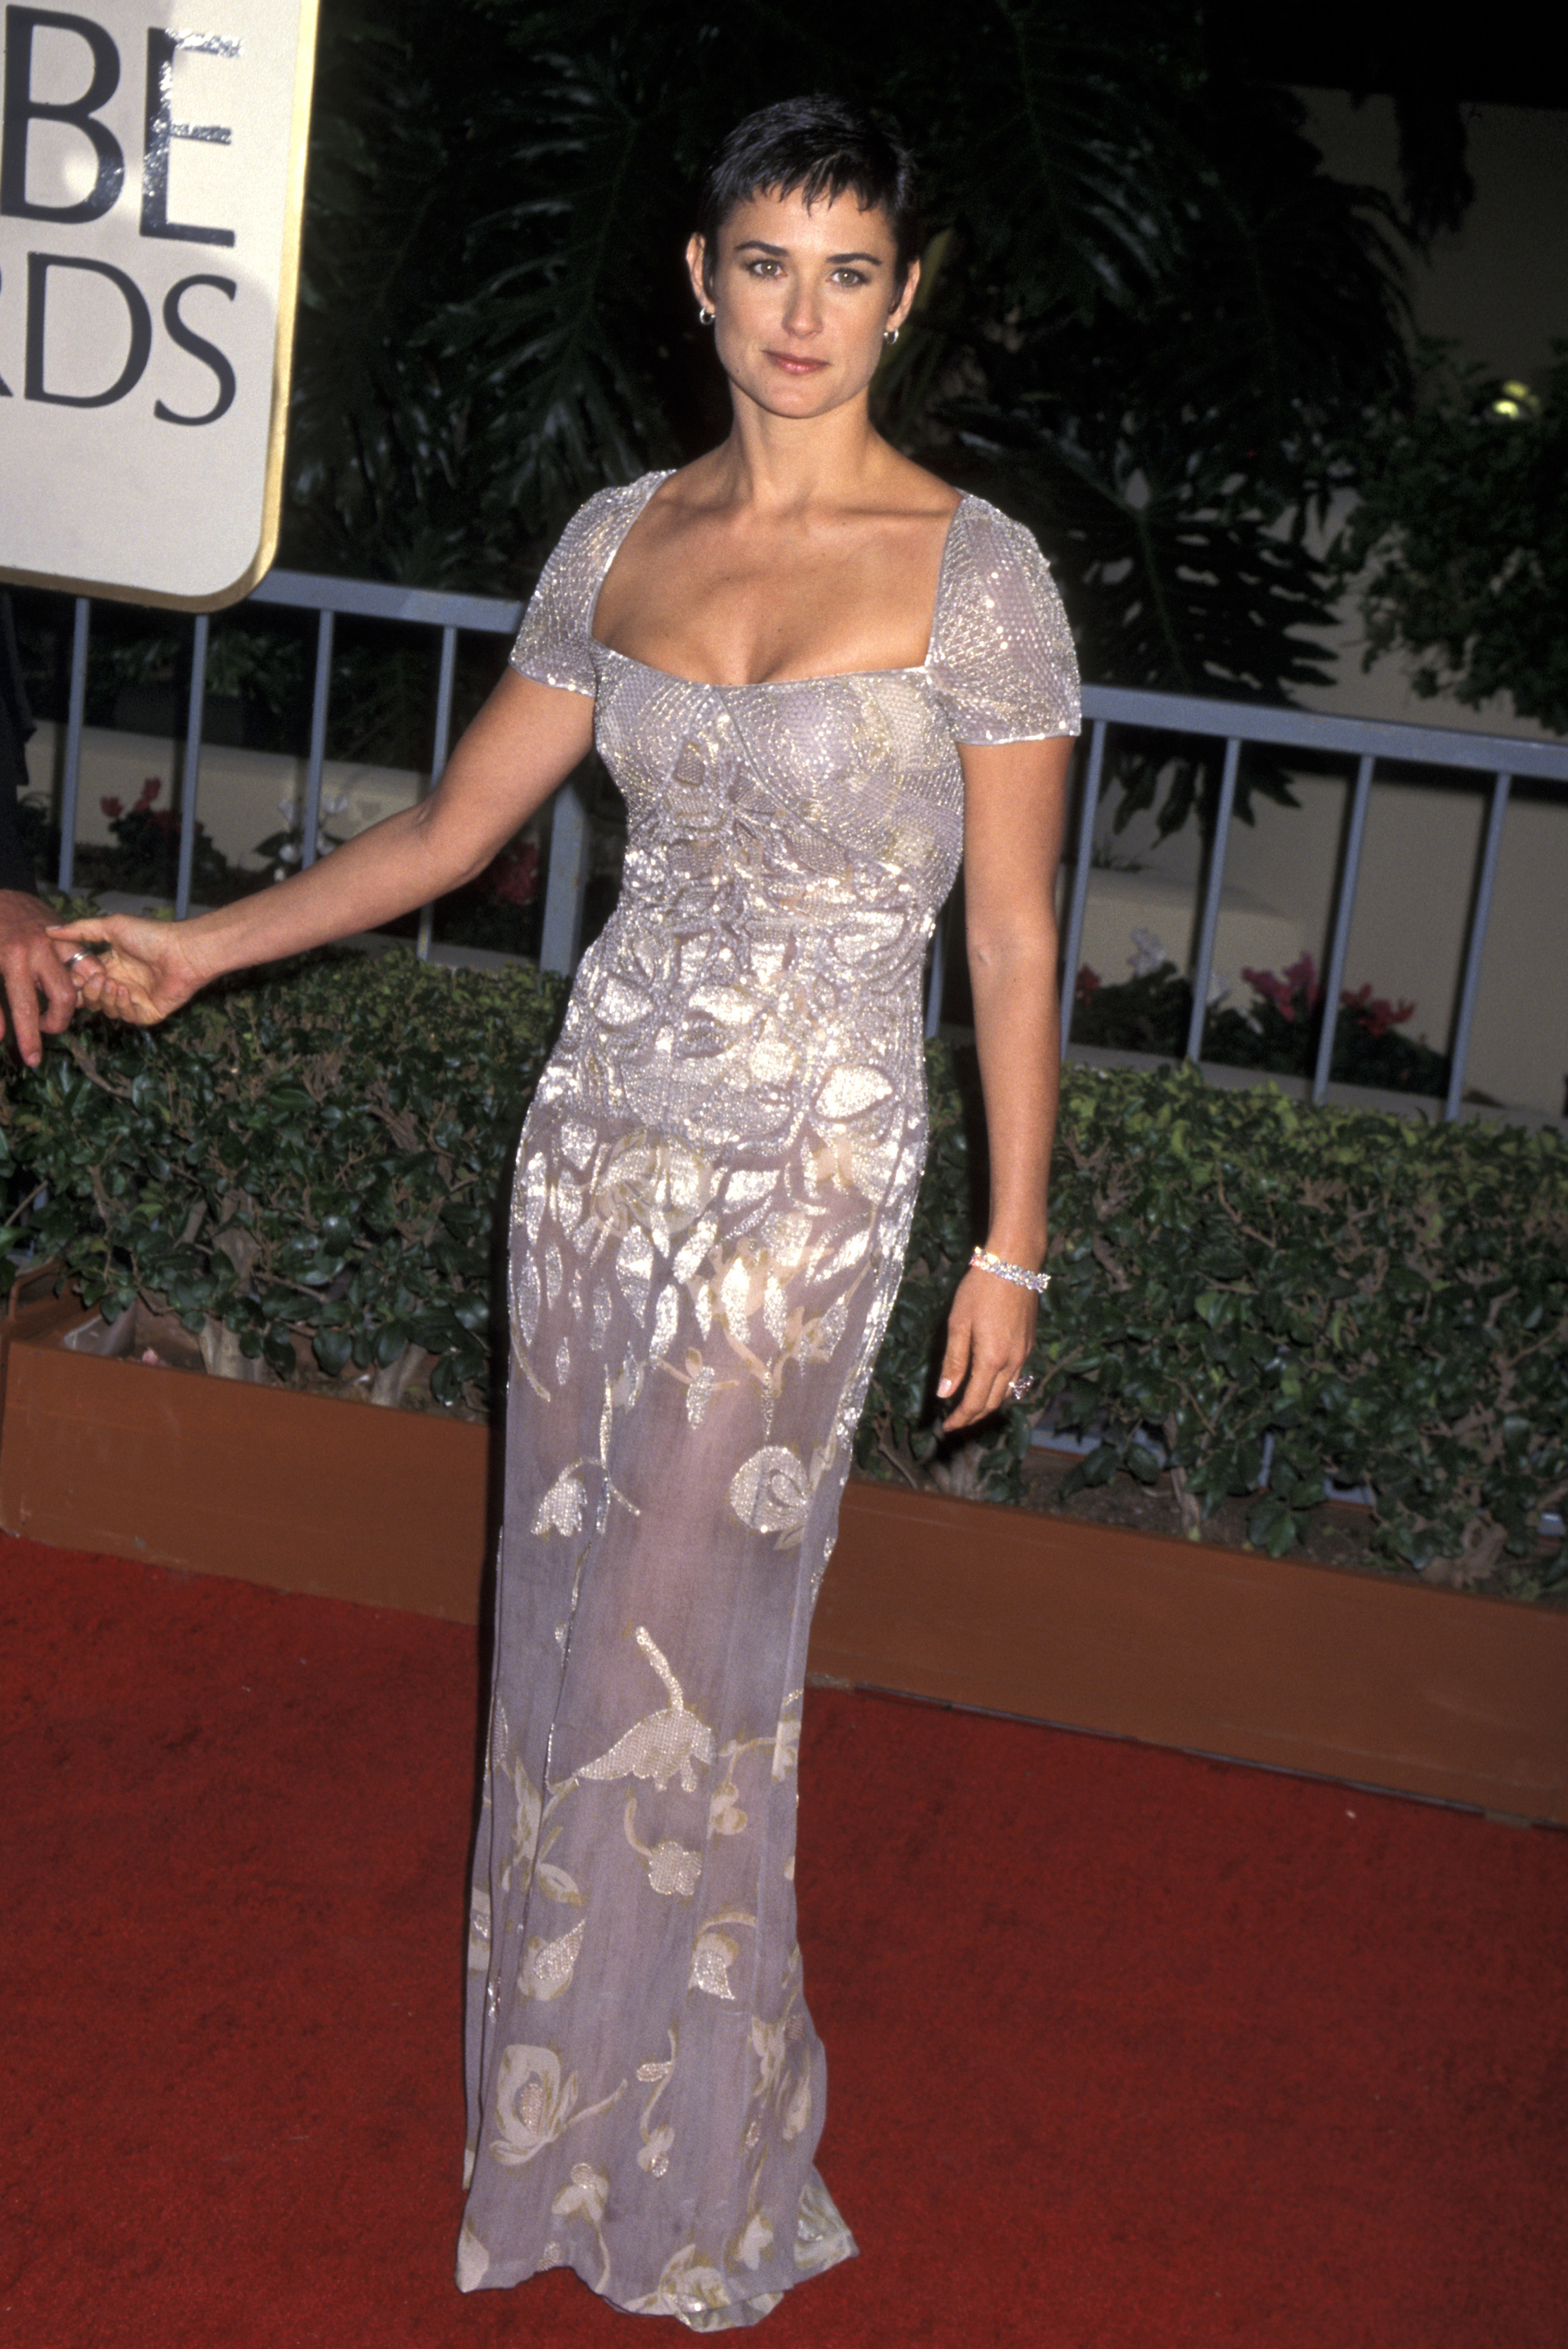 Demi Moore attends the 52nd Annual Golden Globe Awards in Los Angeles, Calif., on Jan. 21, 1995.